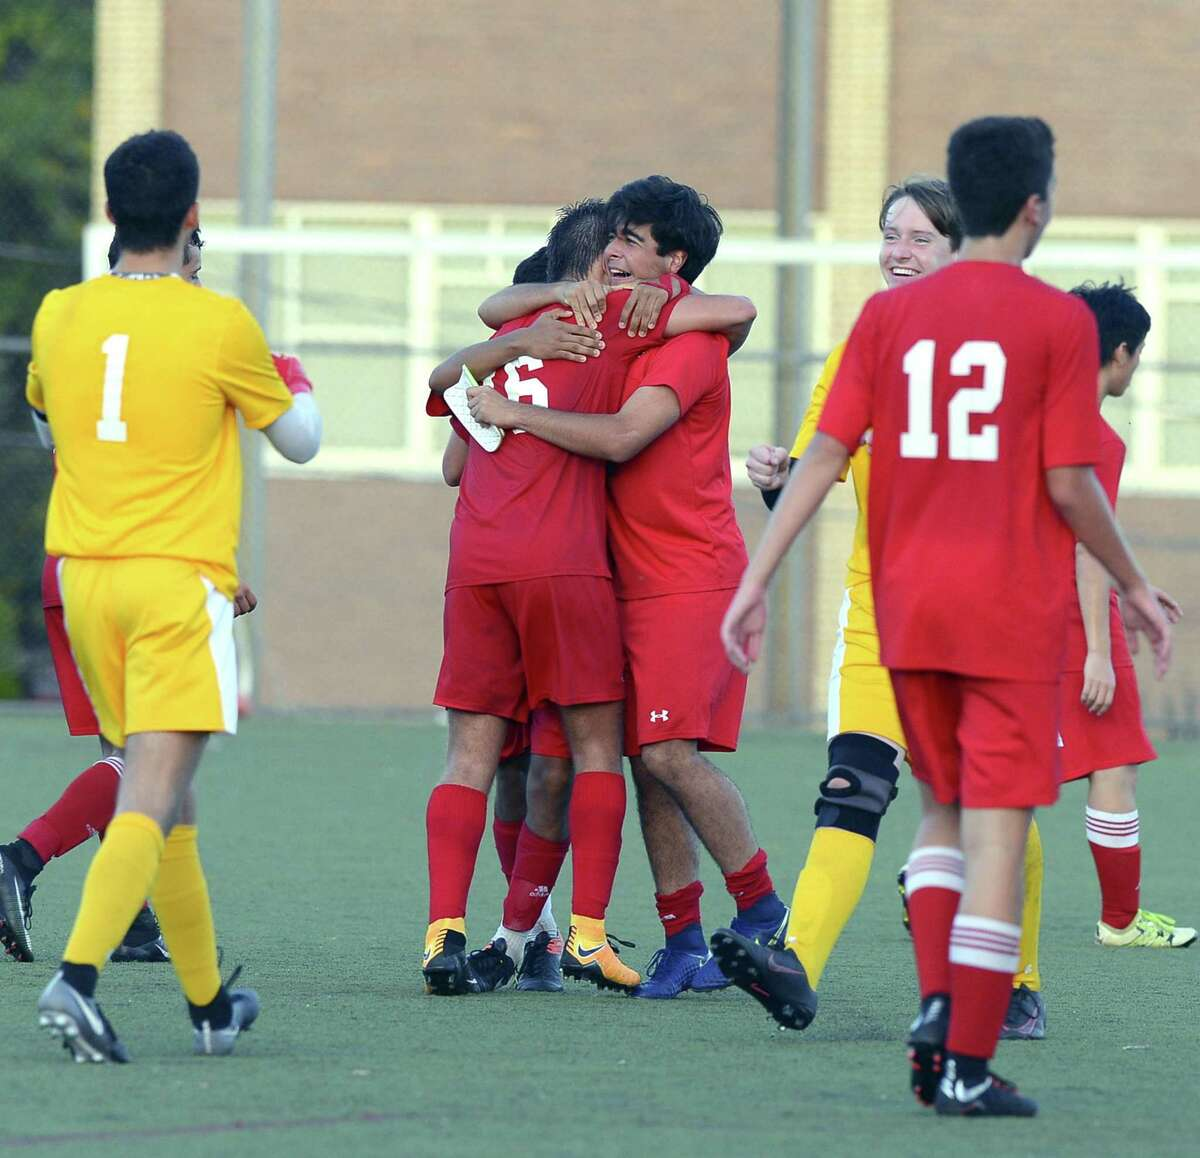 Greenwich celebrates following their 2-1 win against Stamford in a FCIAC boys soccer game at Stamford High School in Stamford, Connecticut on Wednesday, Sept. 27, 2017.